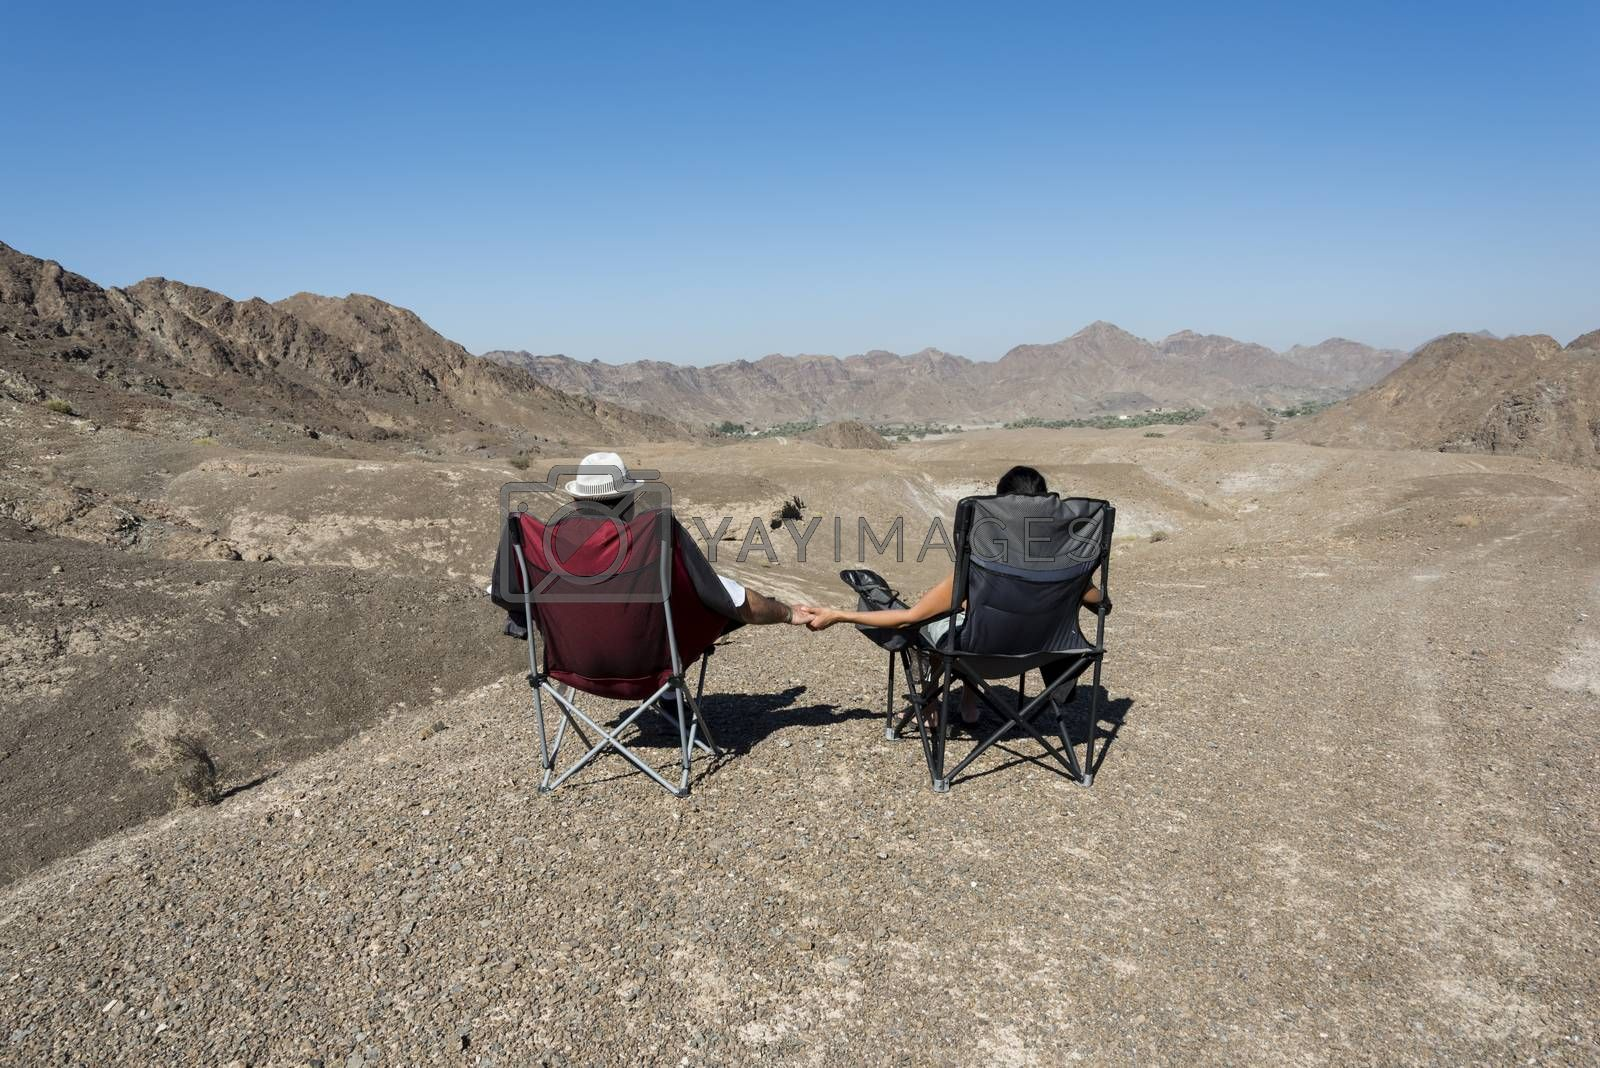 Couple in camping chairs over-looking a Wadi, mountains, in The United Arab Emirates